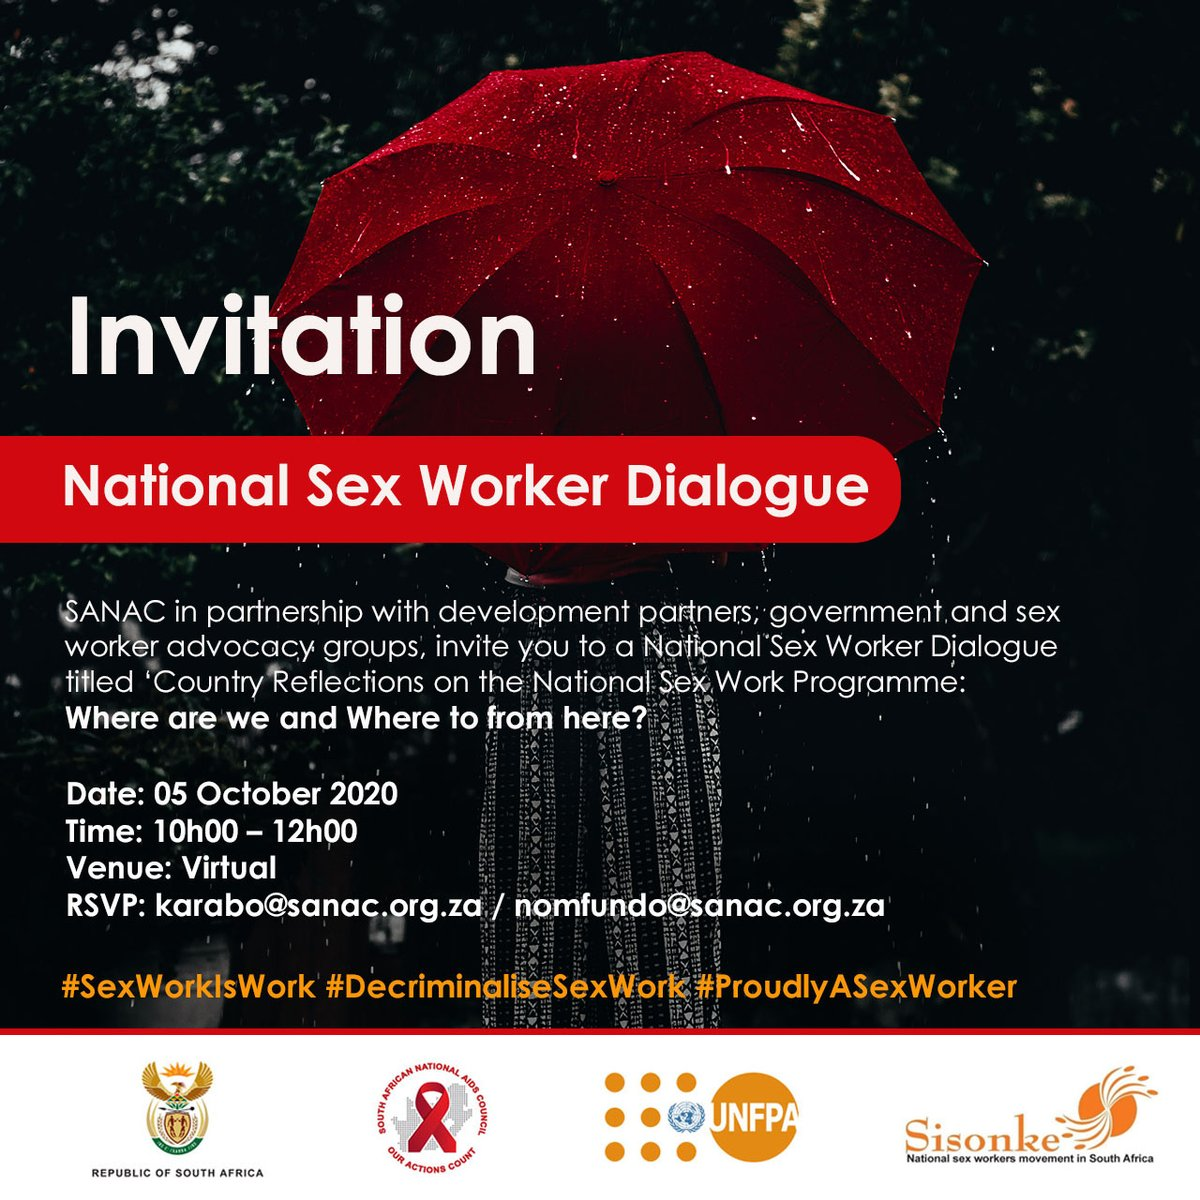 #SexuallyWoke #SexWorkIsWork #SexWork Deputy Minister of @SAPoliceService Hon. Cassel Mathale says although sex work is not decriminalised, he implores all police officials to champion all programmes aimed at addressing gender-based violence and human rights violation.